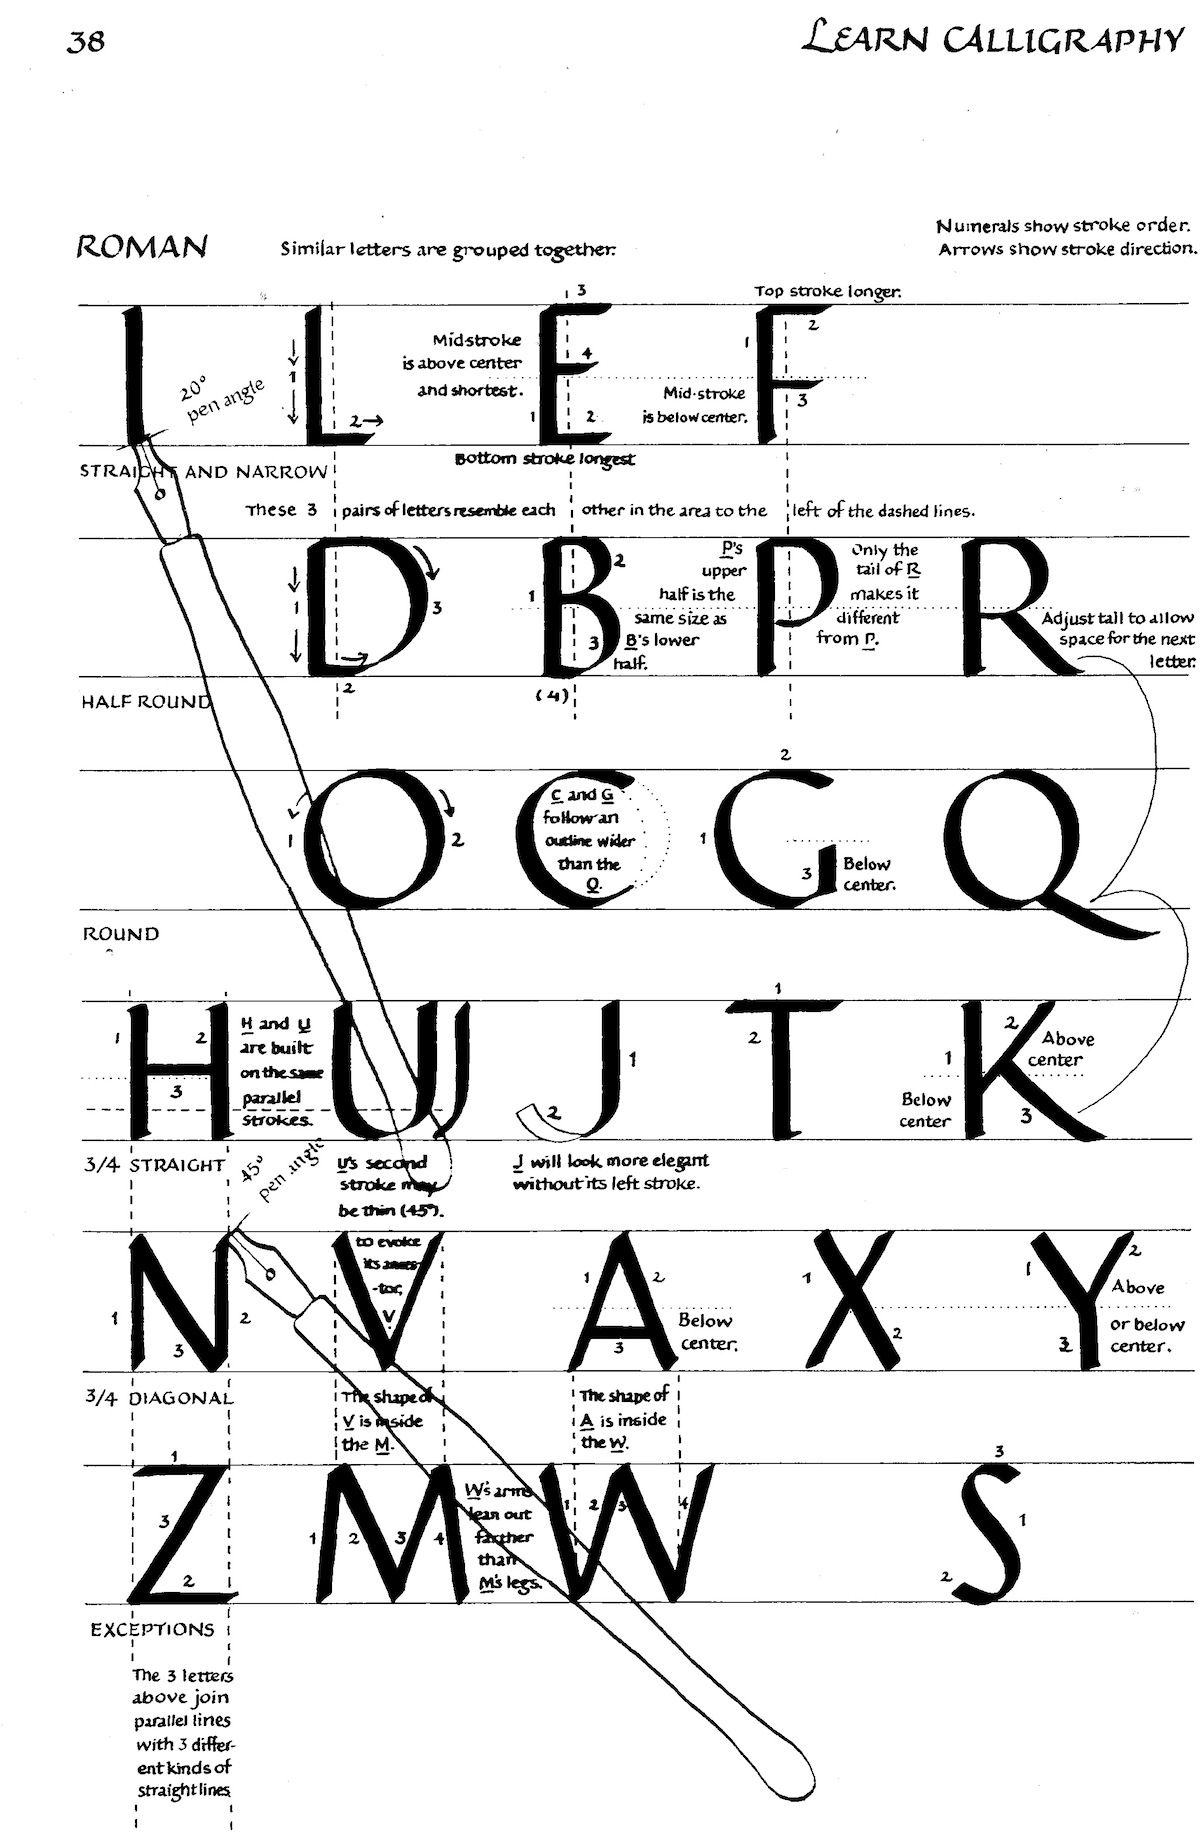 The Roman Alphabet Explained For You The Ultimate Map Of